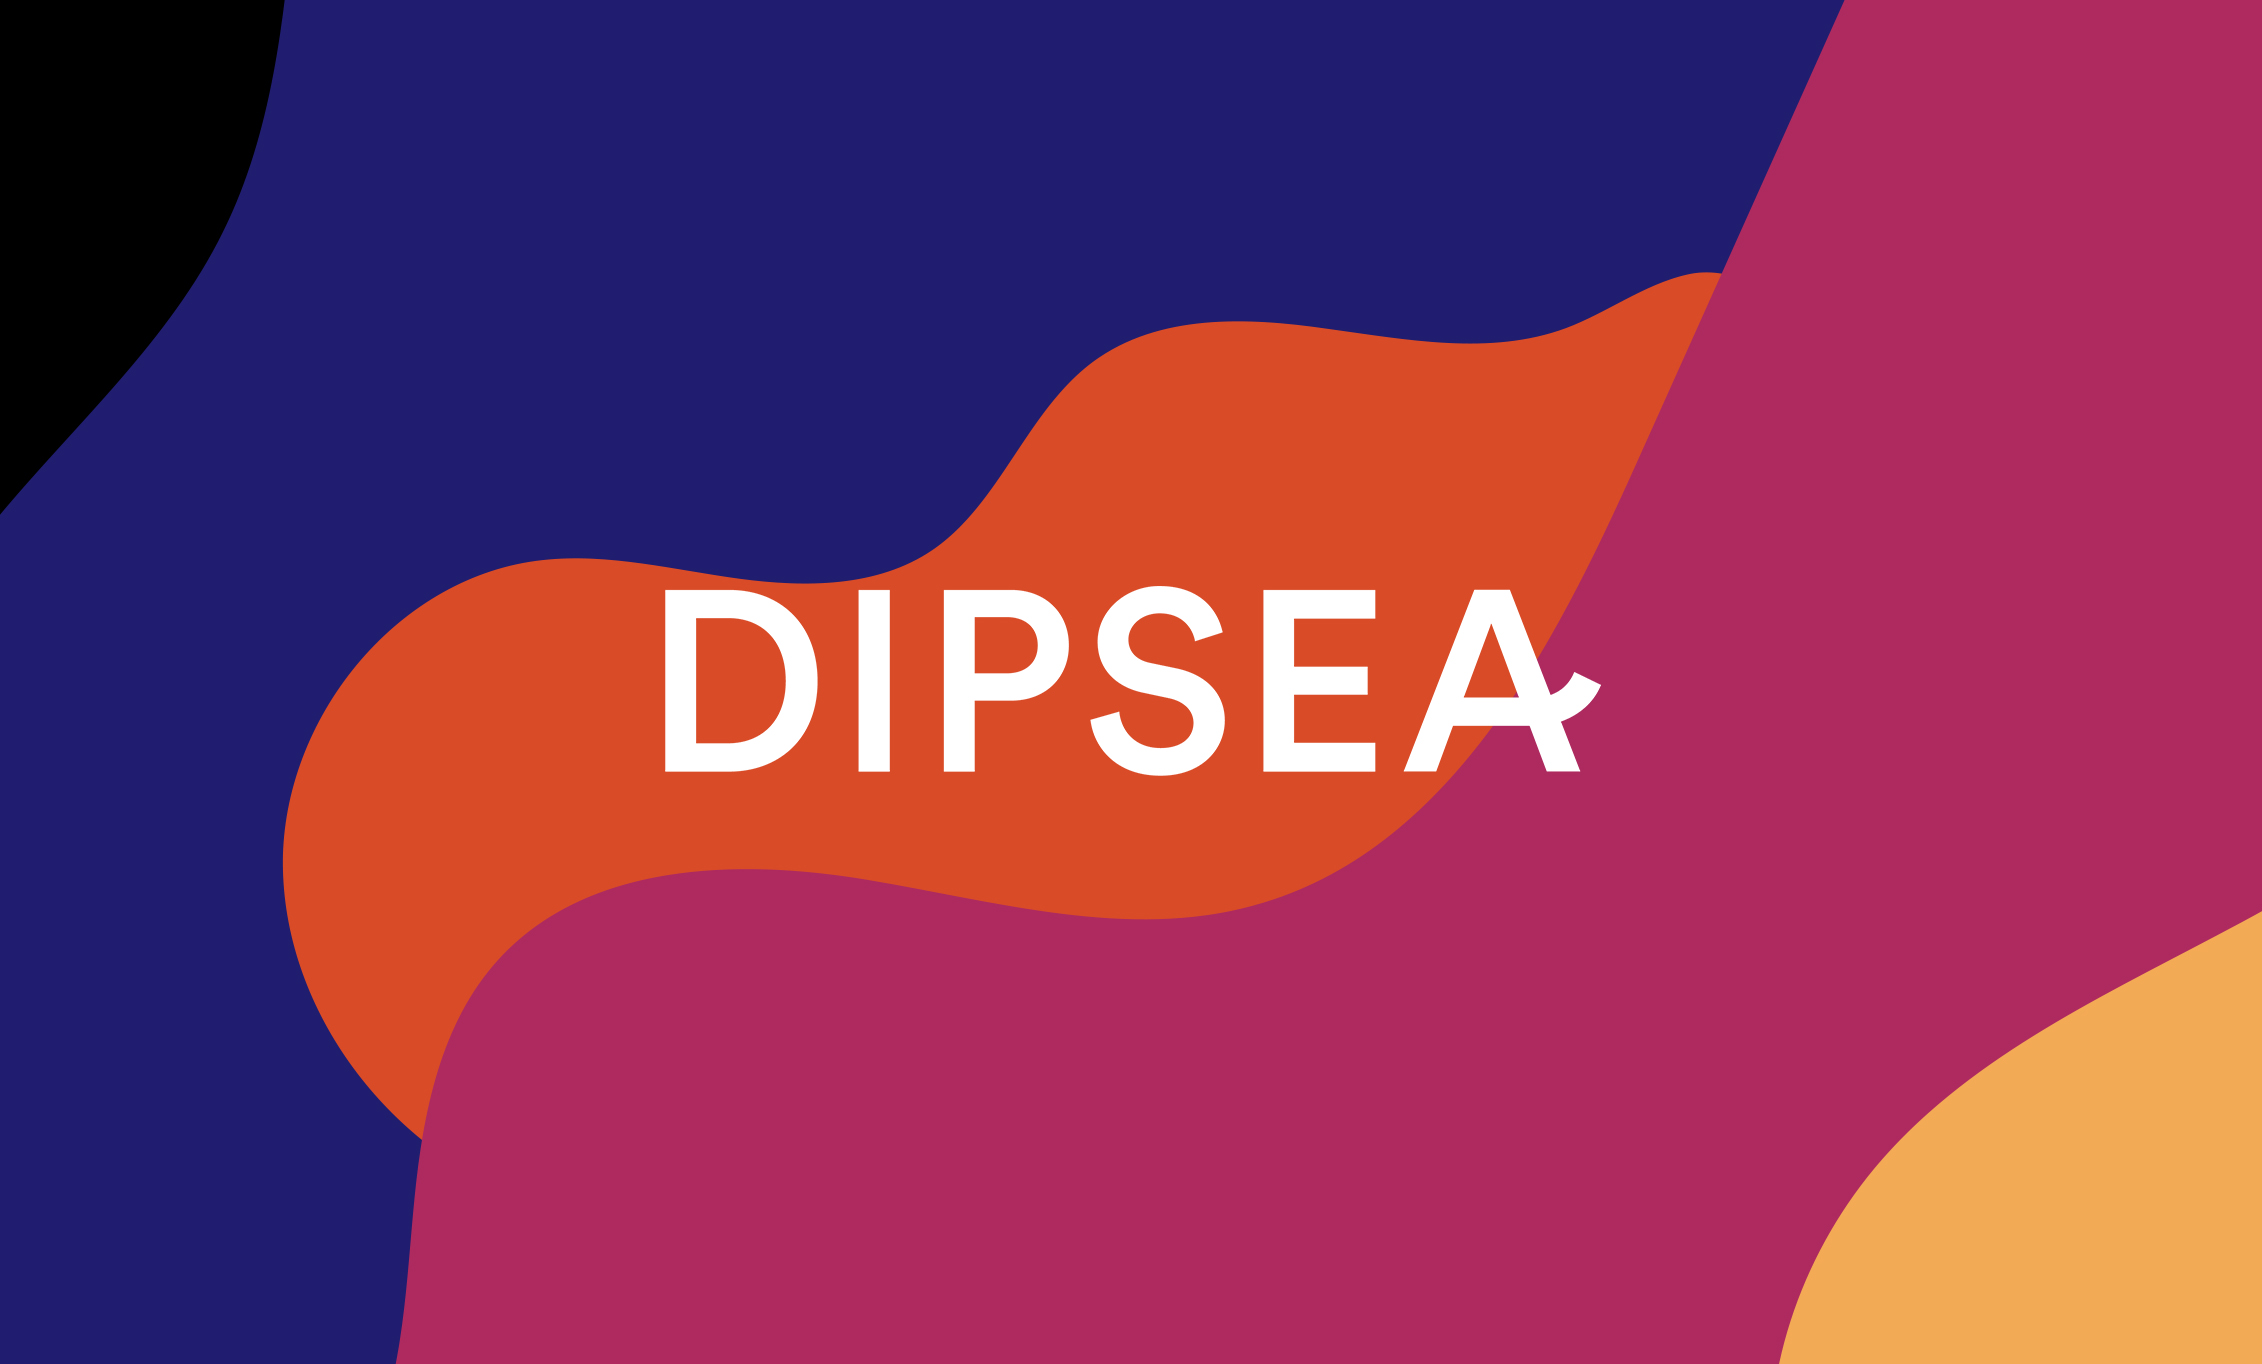 Dipsea - Sexy audio stories that set the mood